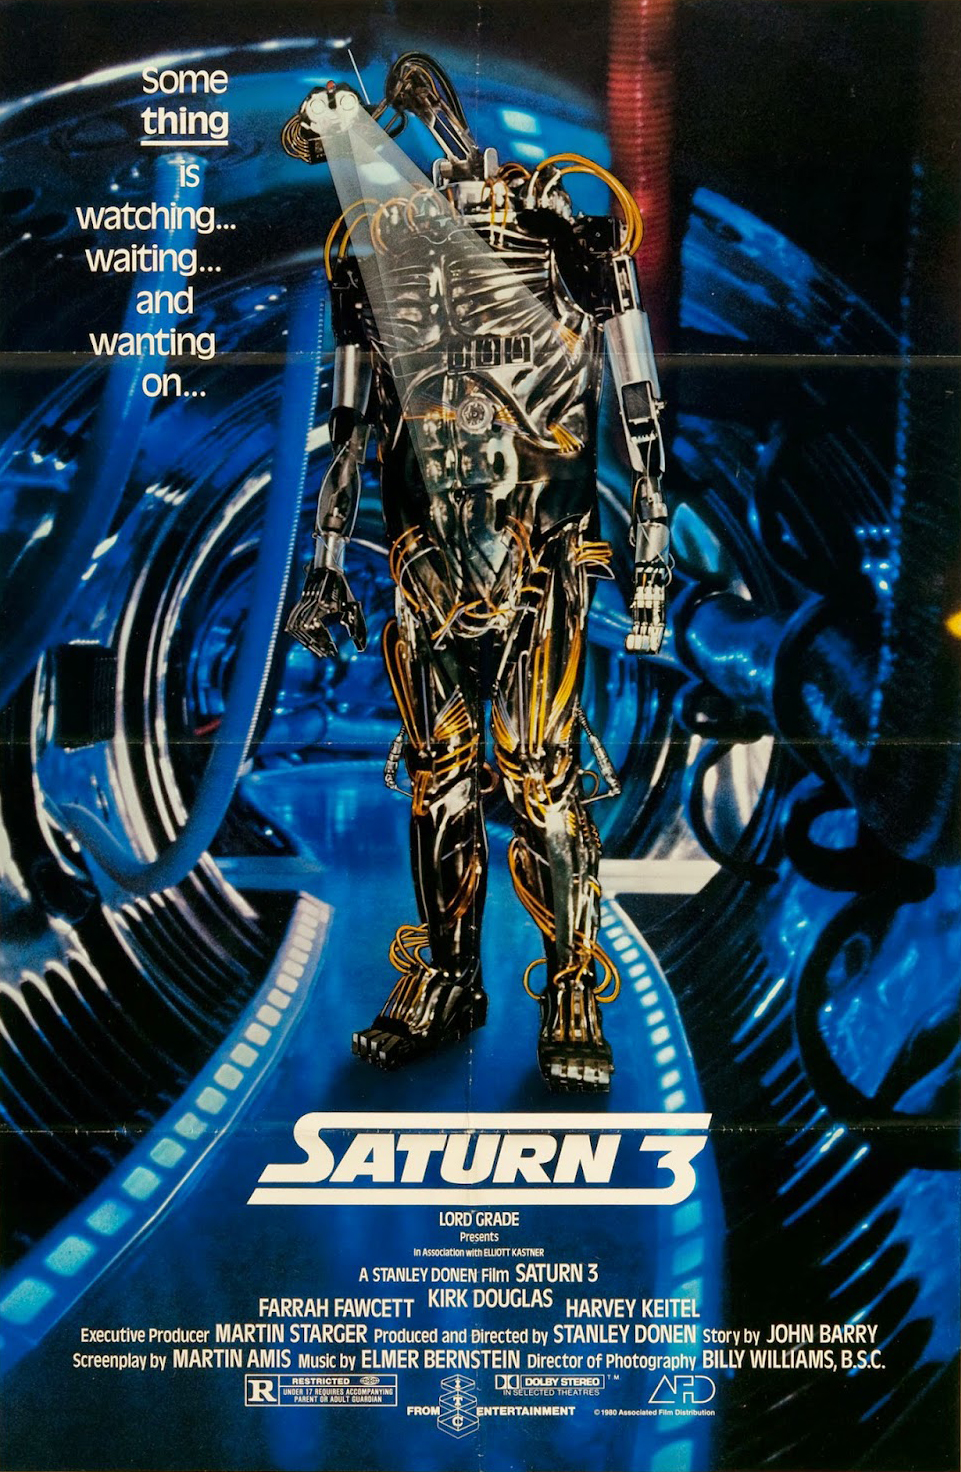 Saturn 3 (1980)  Technical Specifications